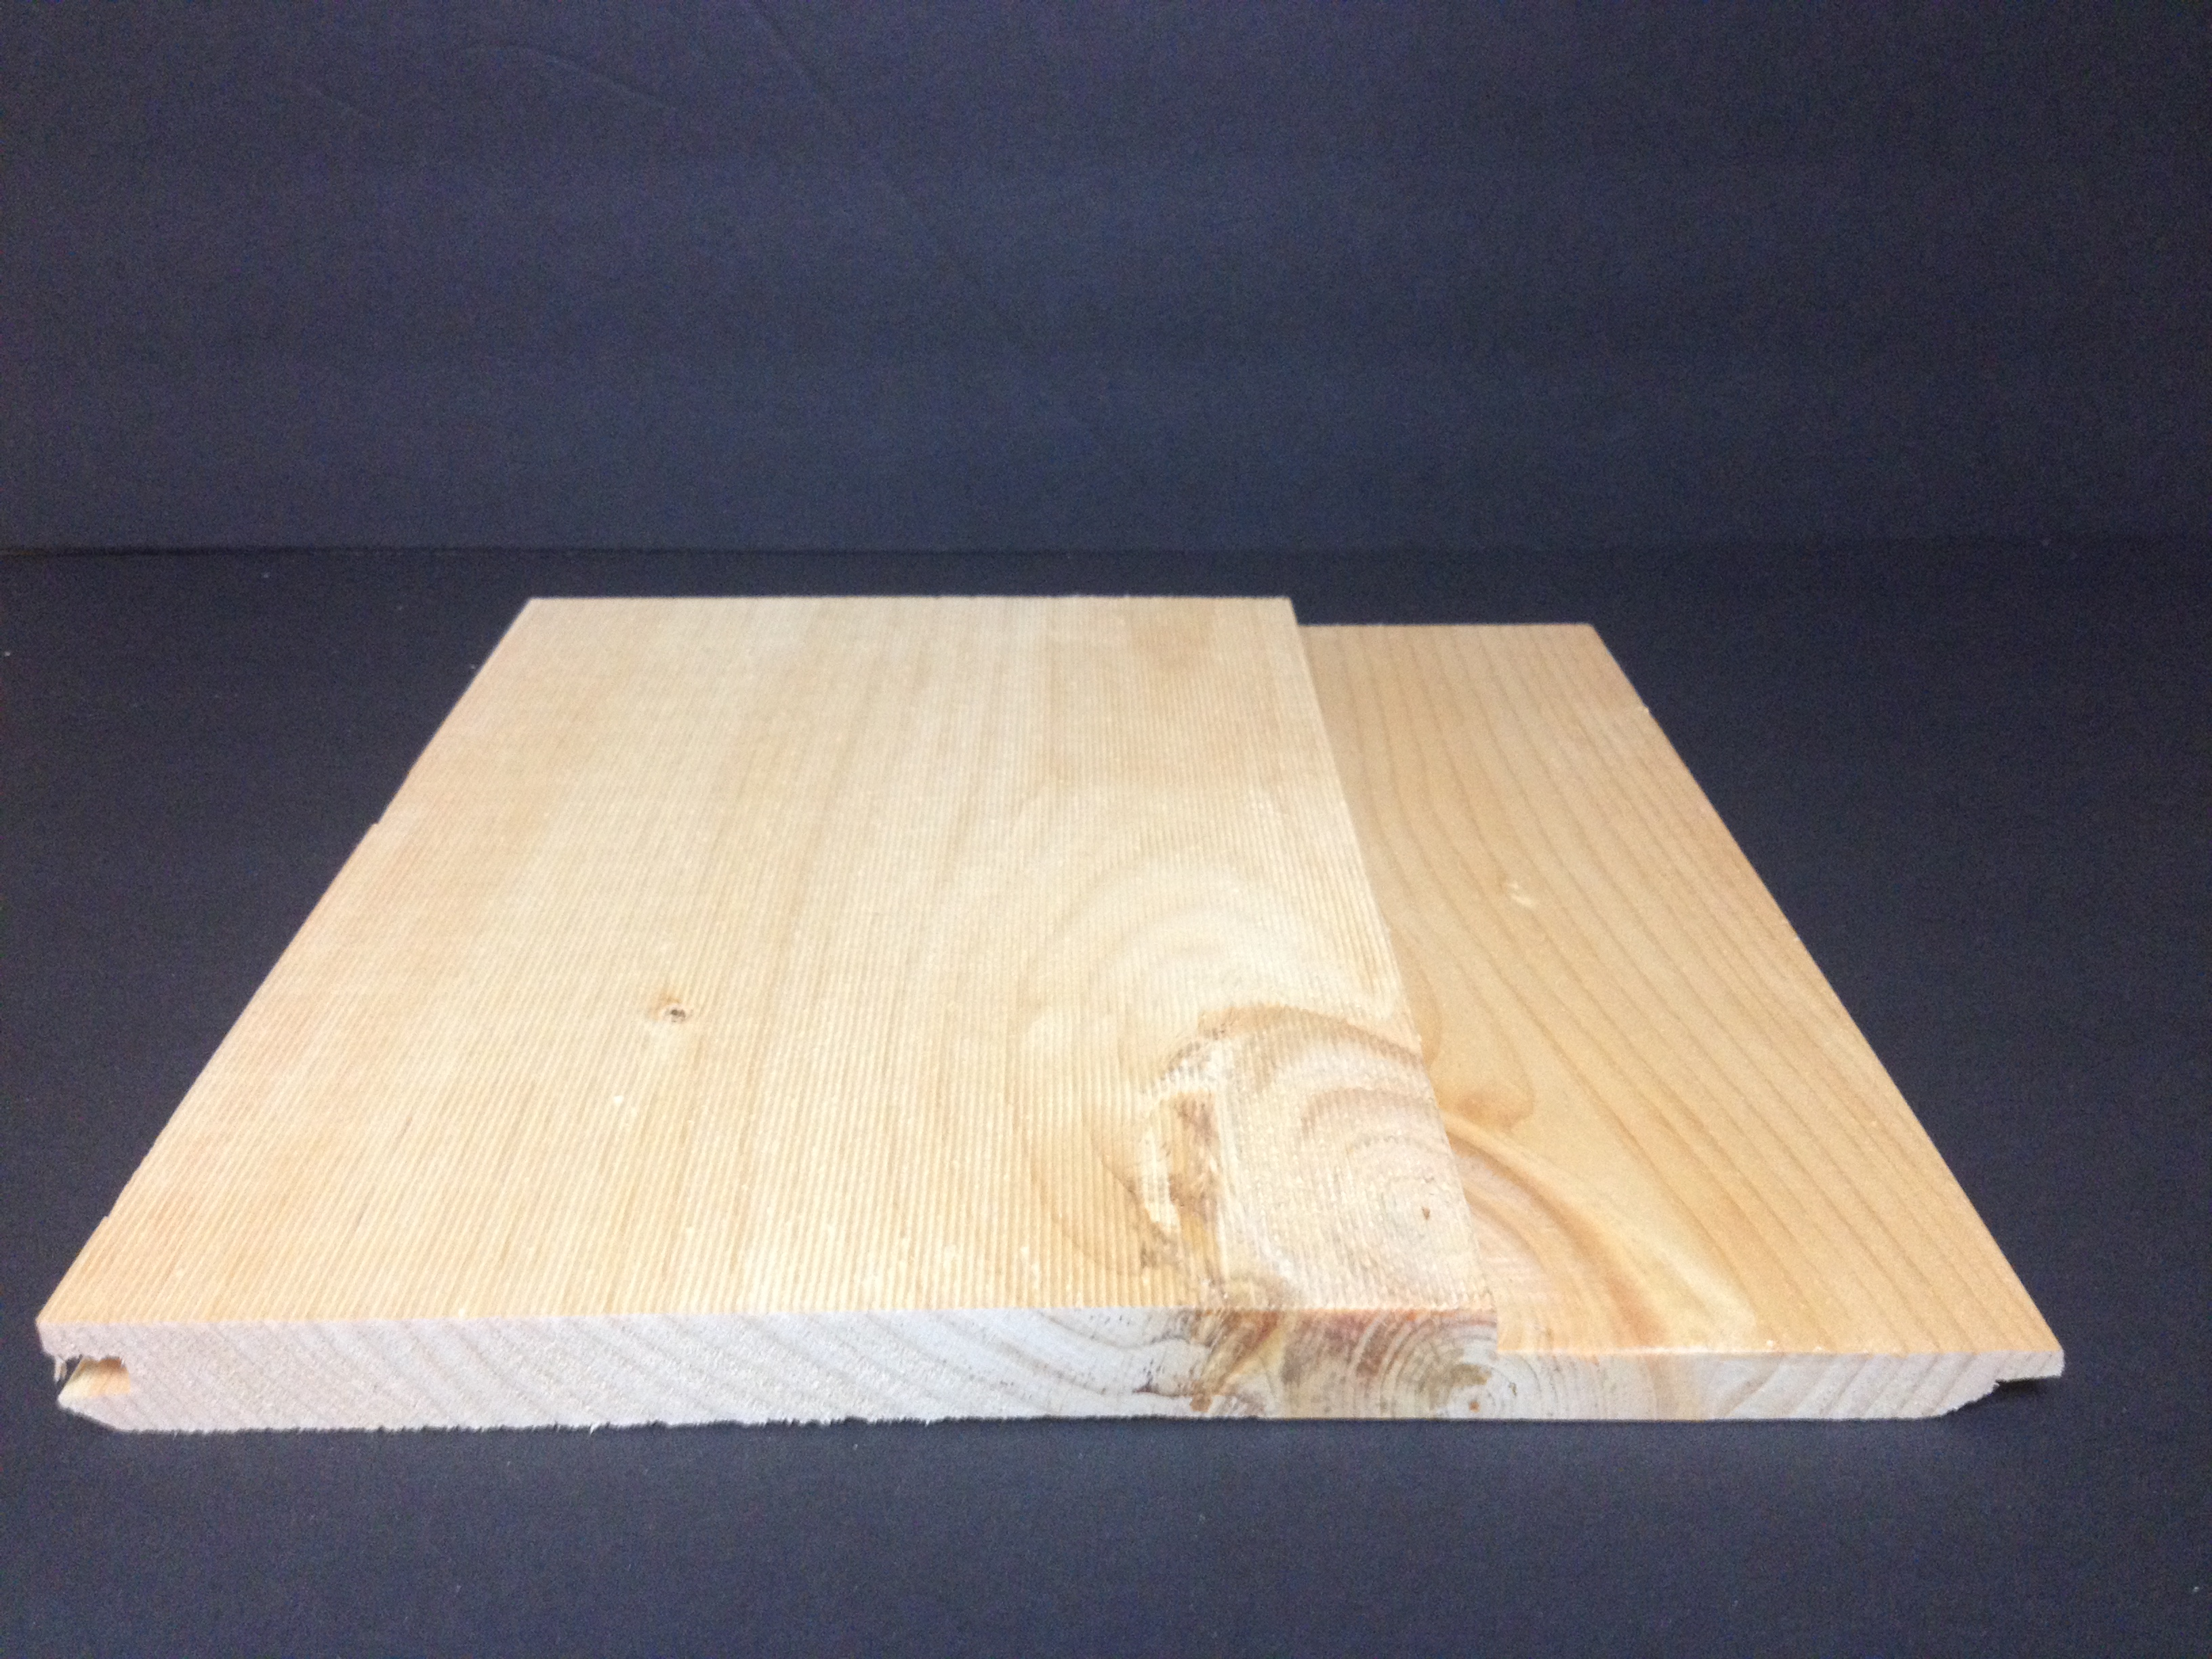 1 X 12 Rough Chink Ln Ft Smoky Mountain Wood Products